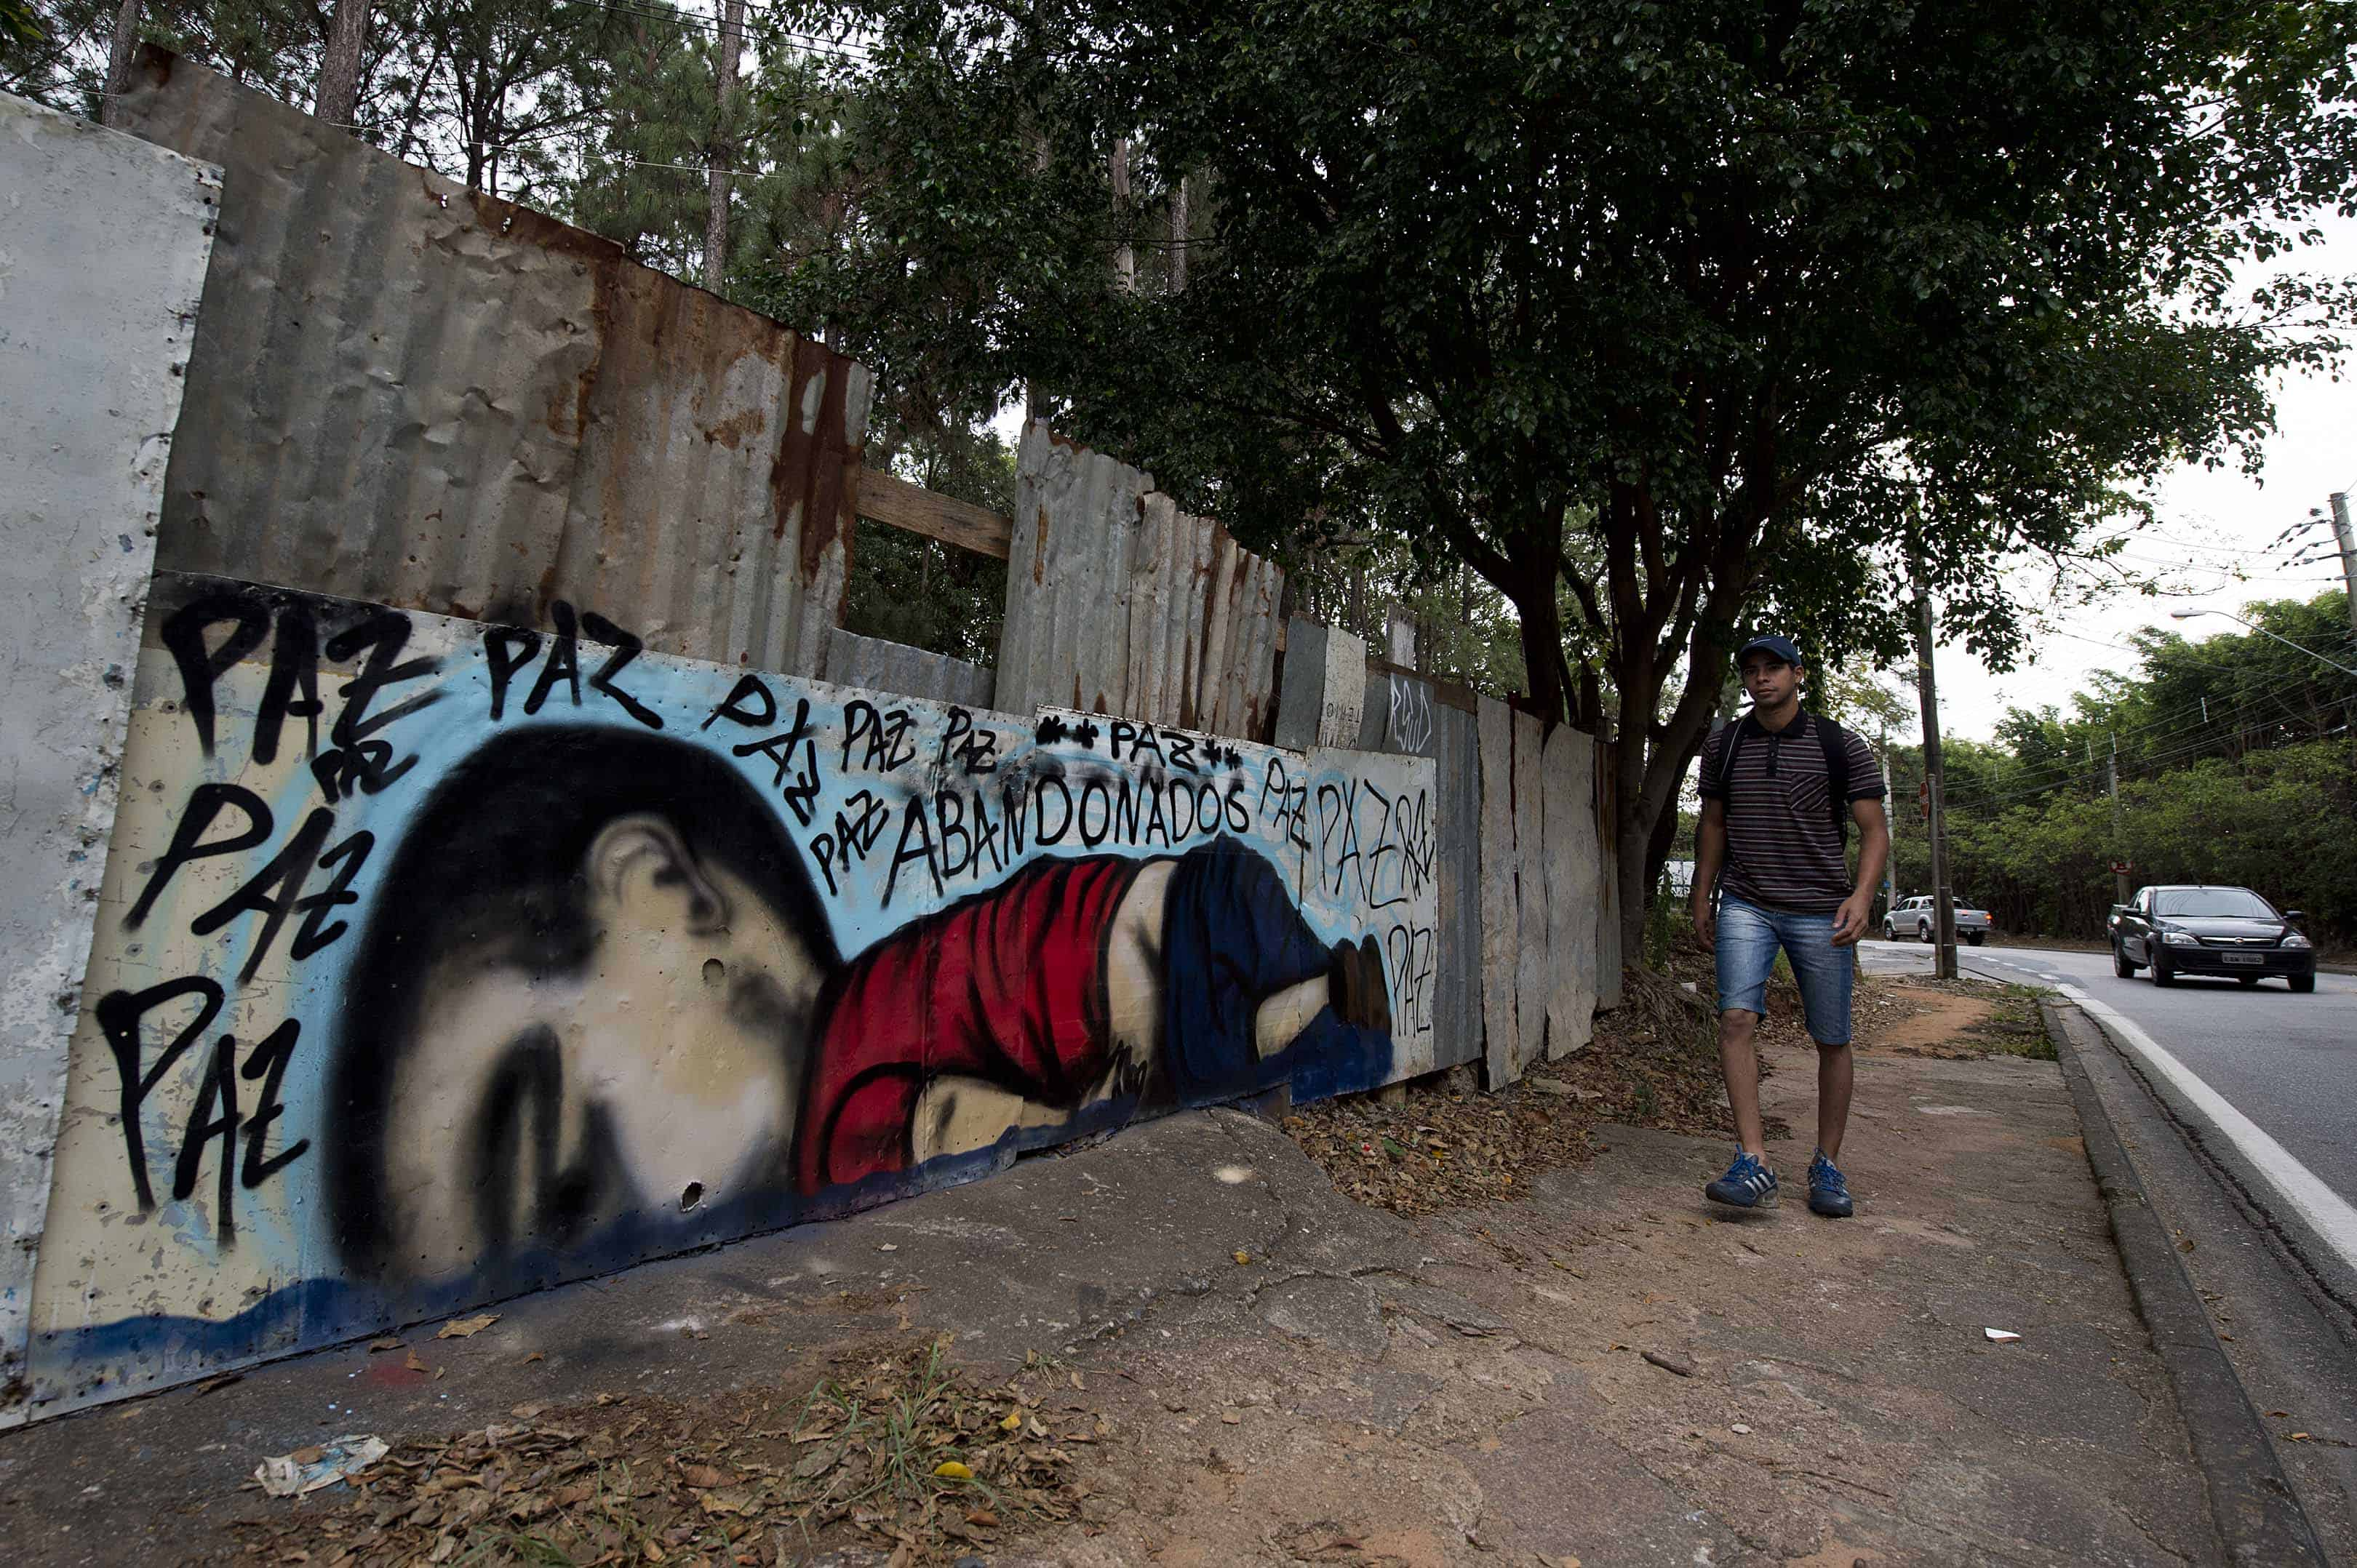 A graffiti depicting Aylan Kurdi, also known as Aylan Shenu, a Syrian 3-year-old boy whose drowning off a Turkish beach, is seen in Sorocaba, some 90 km from Sao Paulo, Brazil, on Sept. 6, 2015.